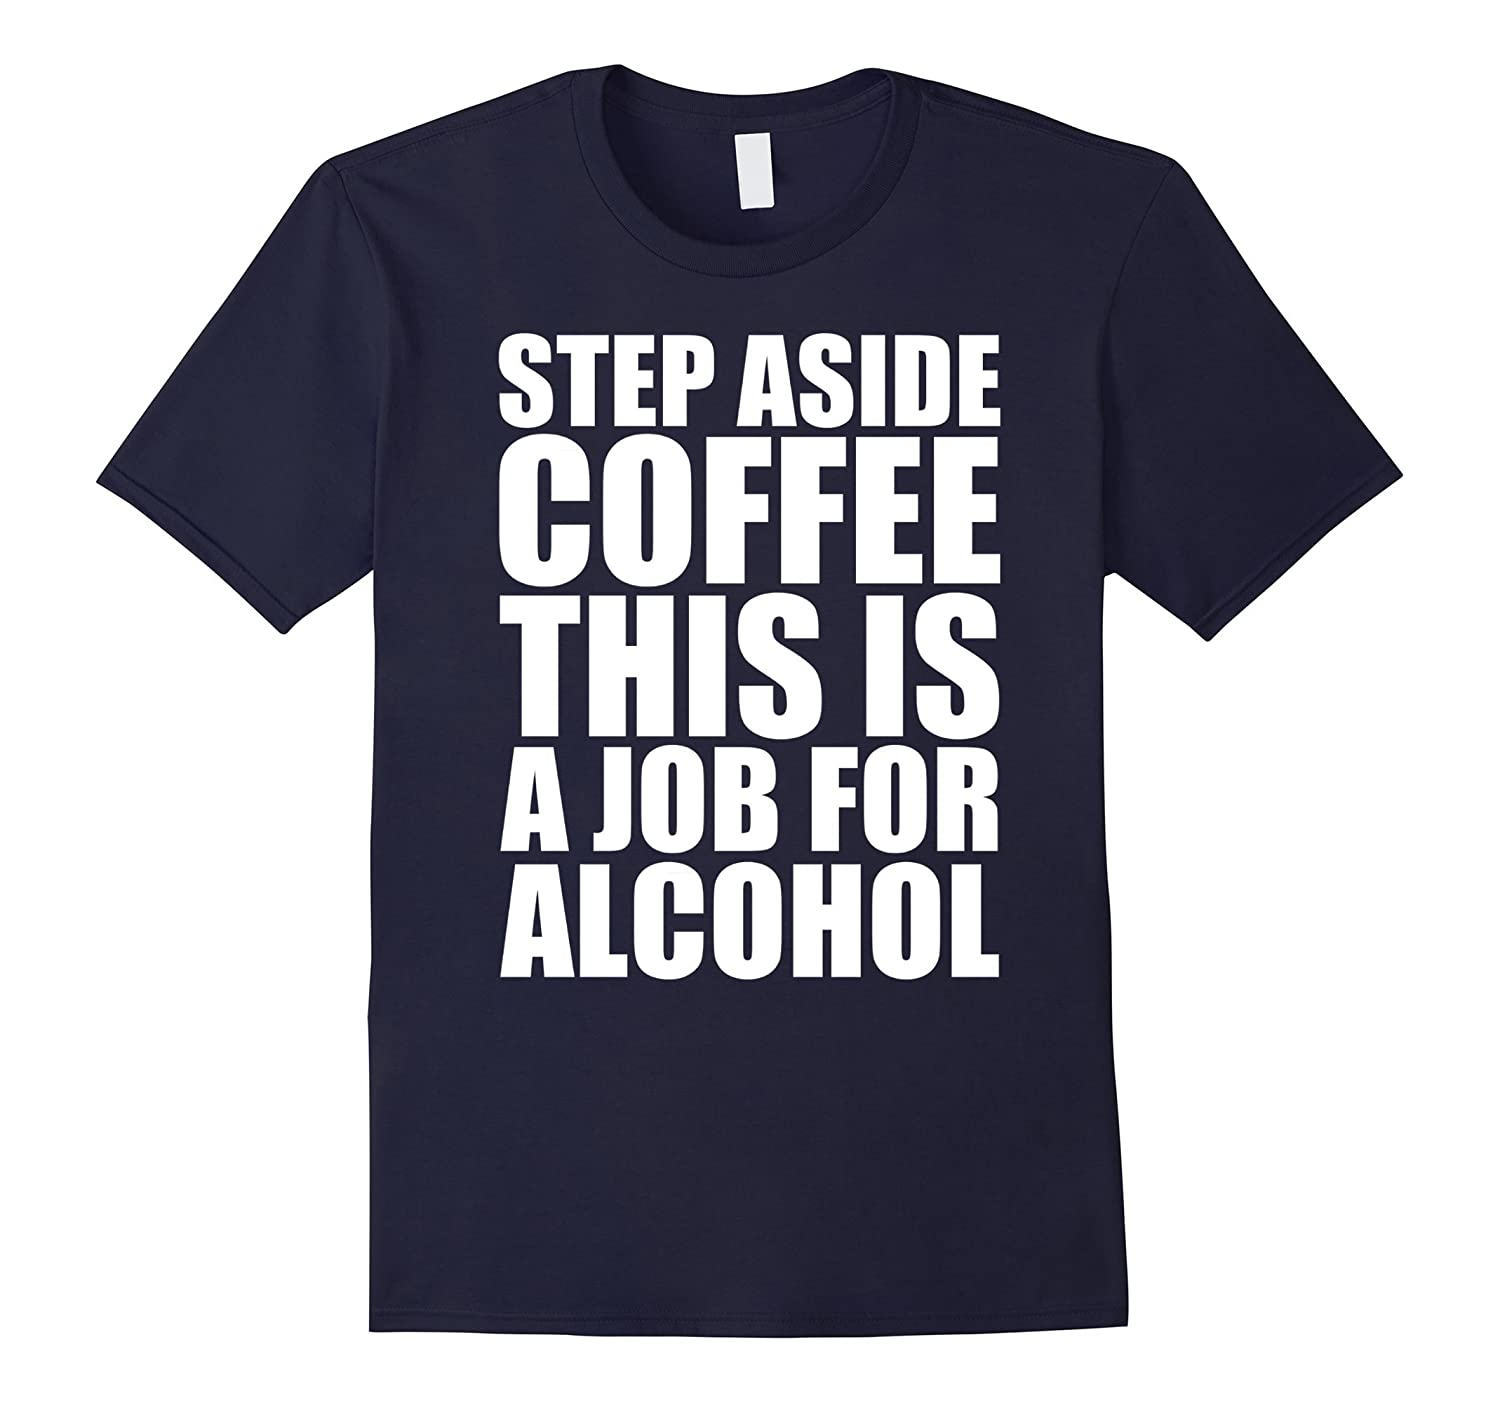 Step Aside Coffe This is a Job for Alcohol - Beer T-Shirt-TJ